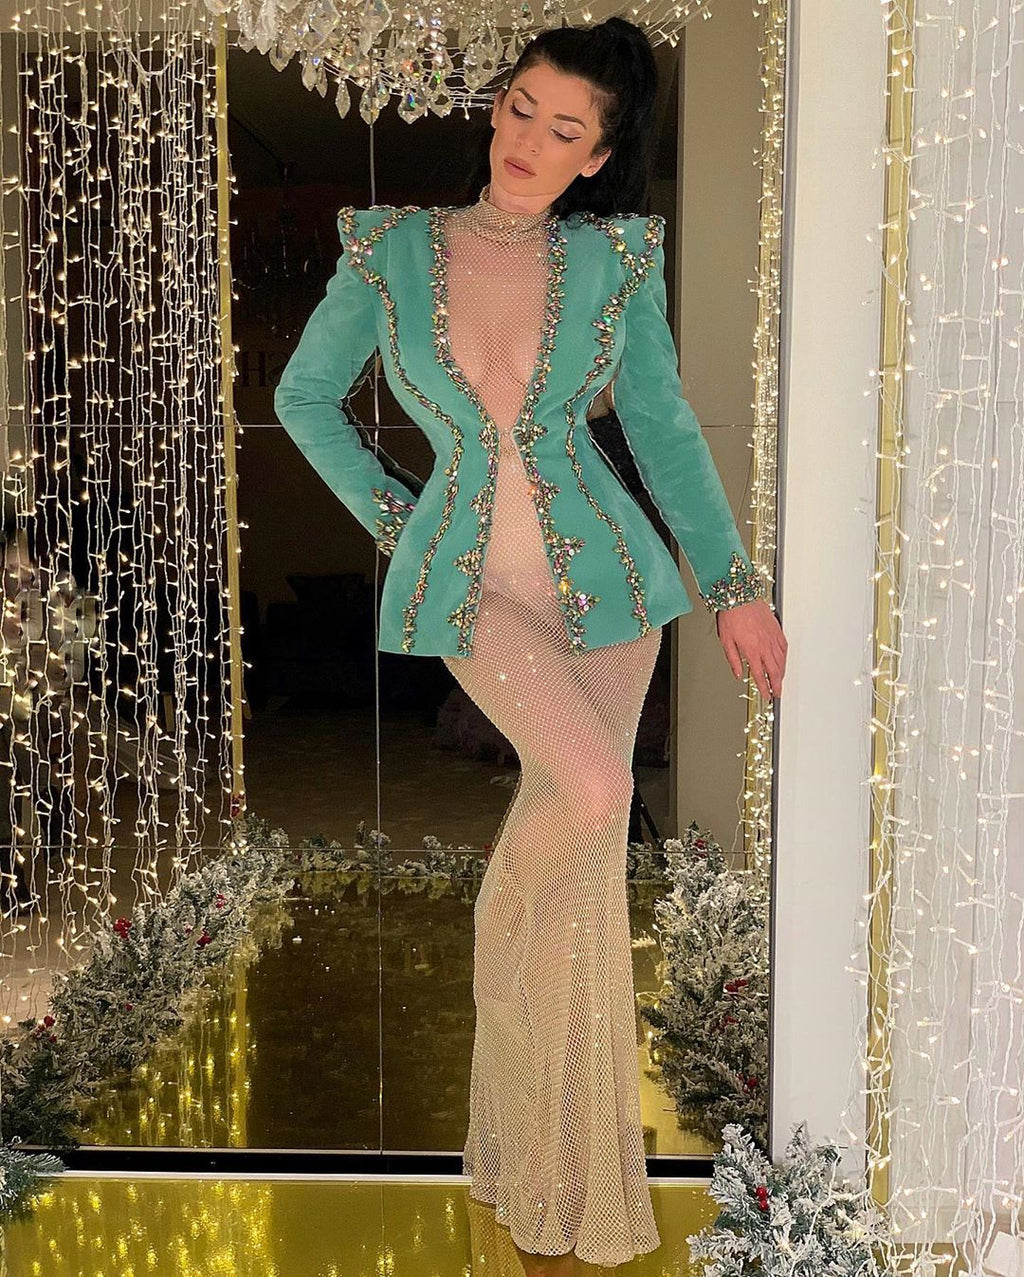 Glittery Gown with Turquoise Beaded Jacket